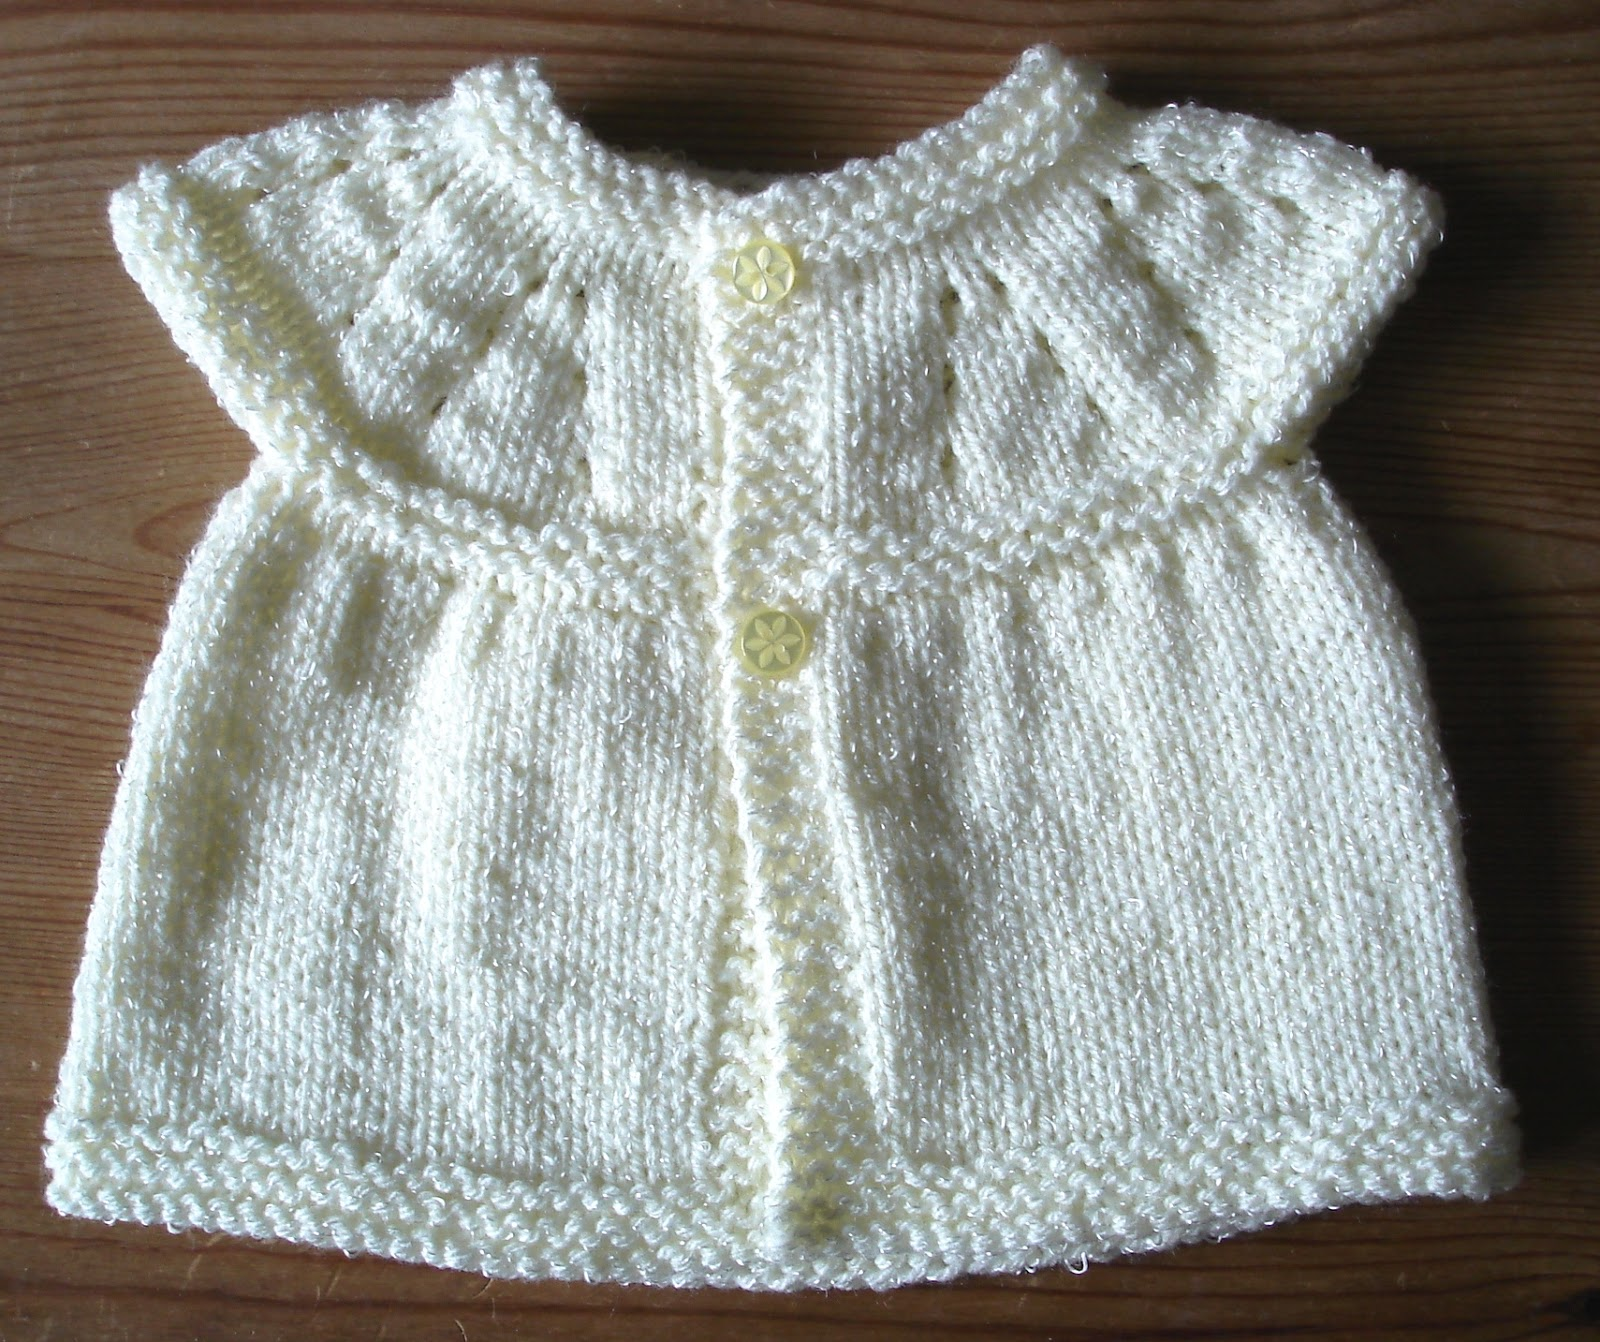 Newborn Knit Patterns : mariannas lazy daisy days: All-in-one Knitted Baby Tops